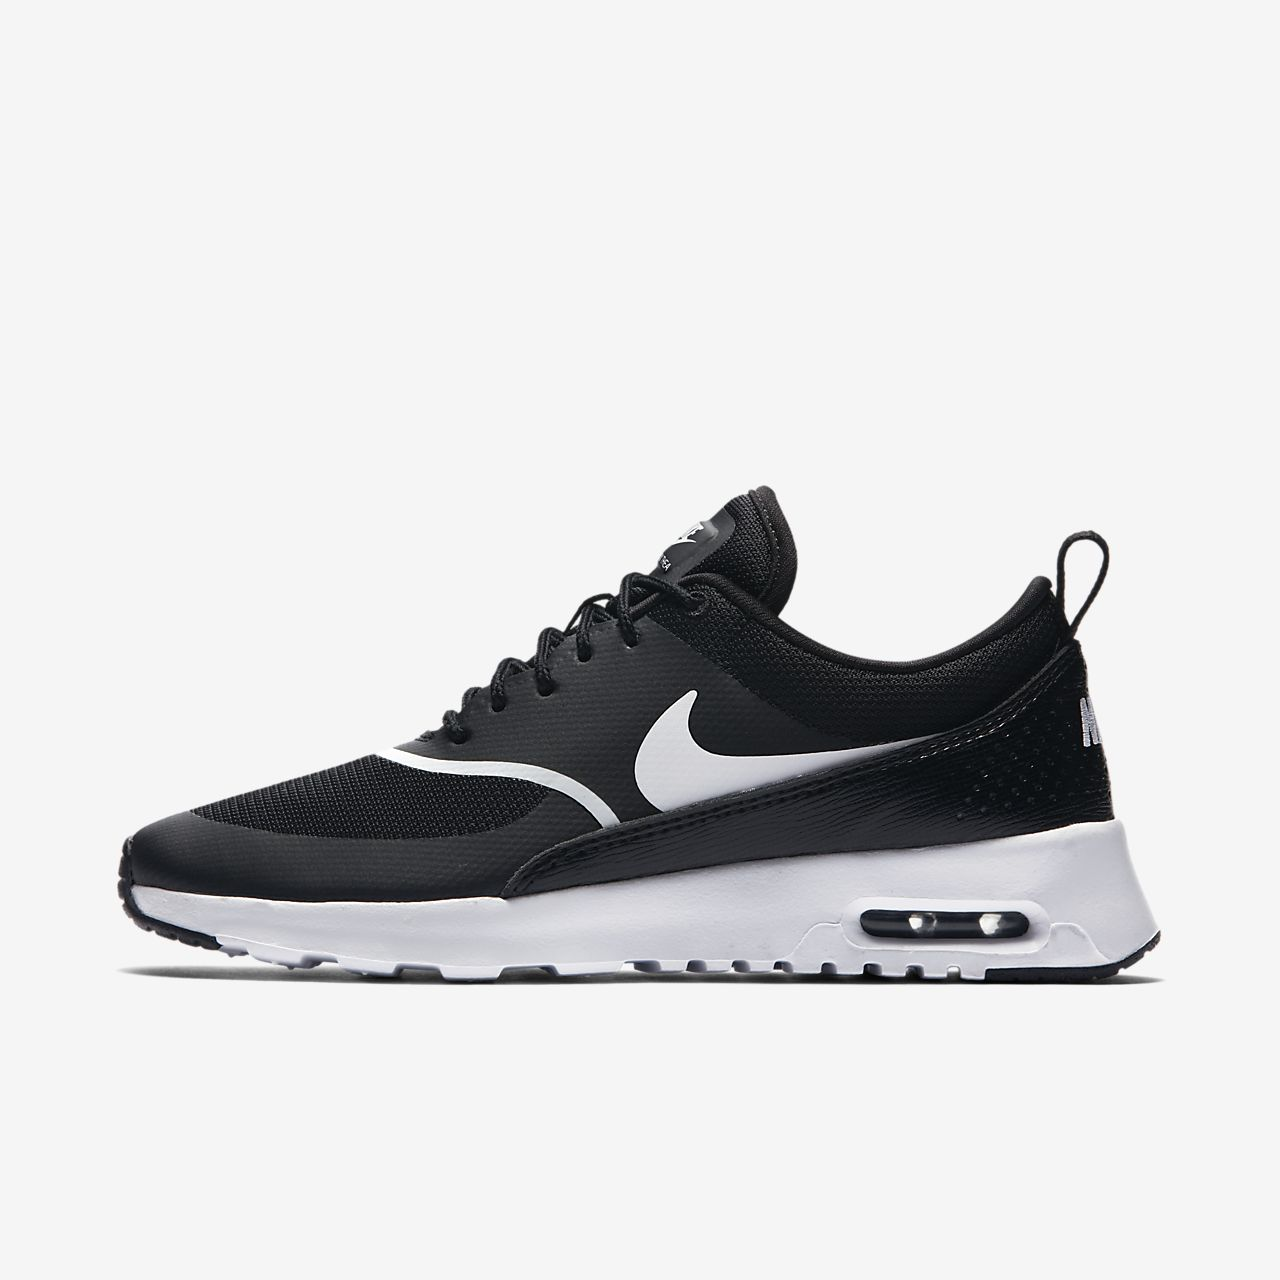 reputable site 07a24 0331f ... Sko Nike Air Max Thea för kvinnor